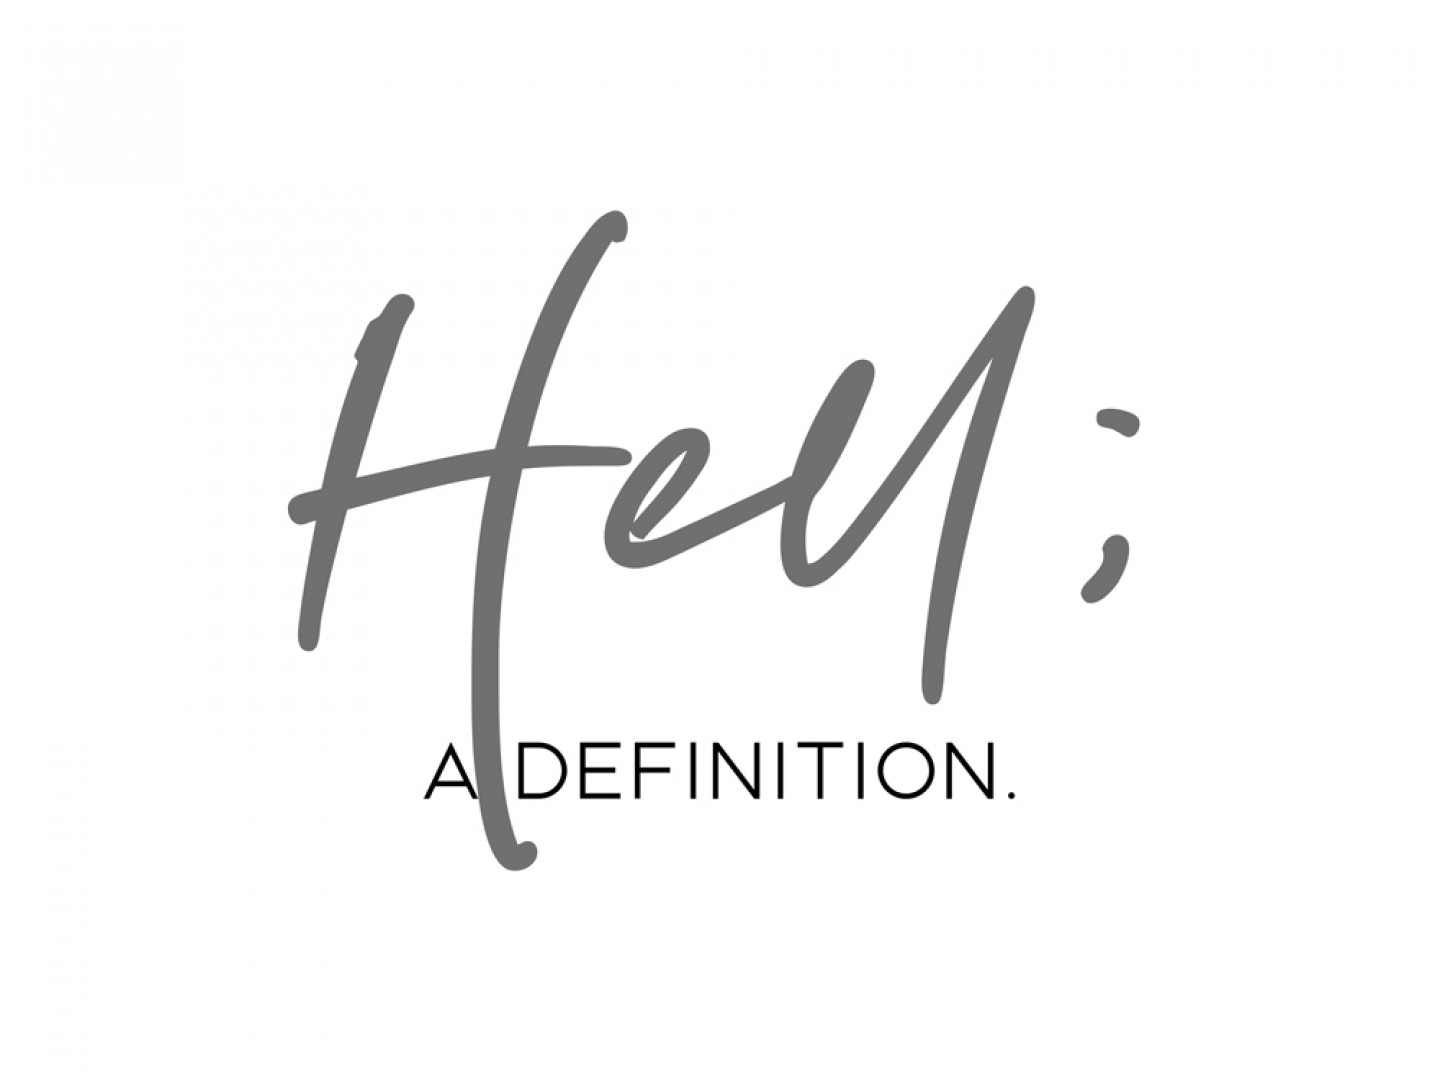 Hell-a definition